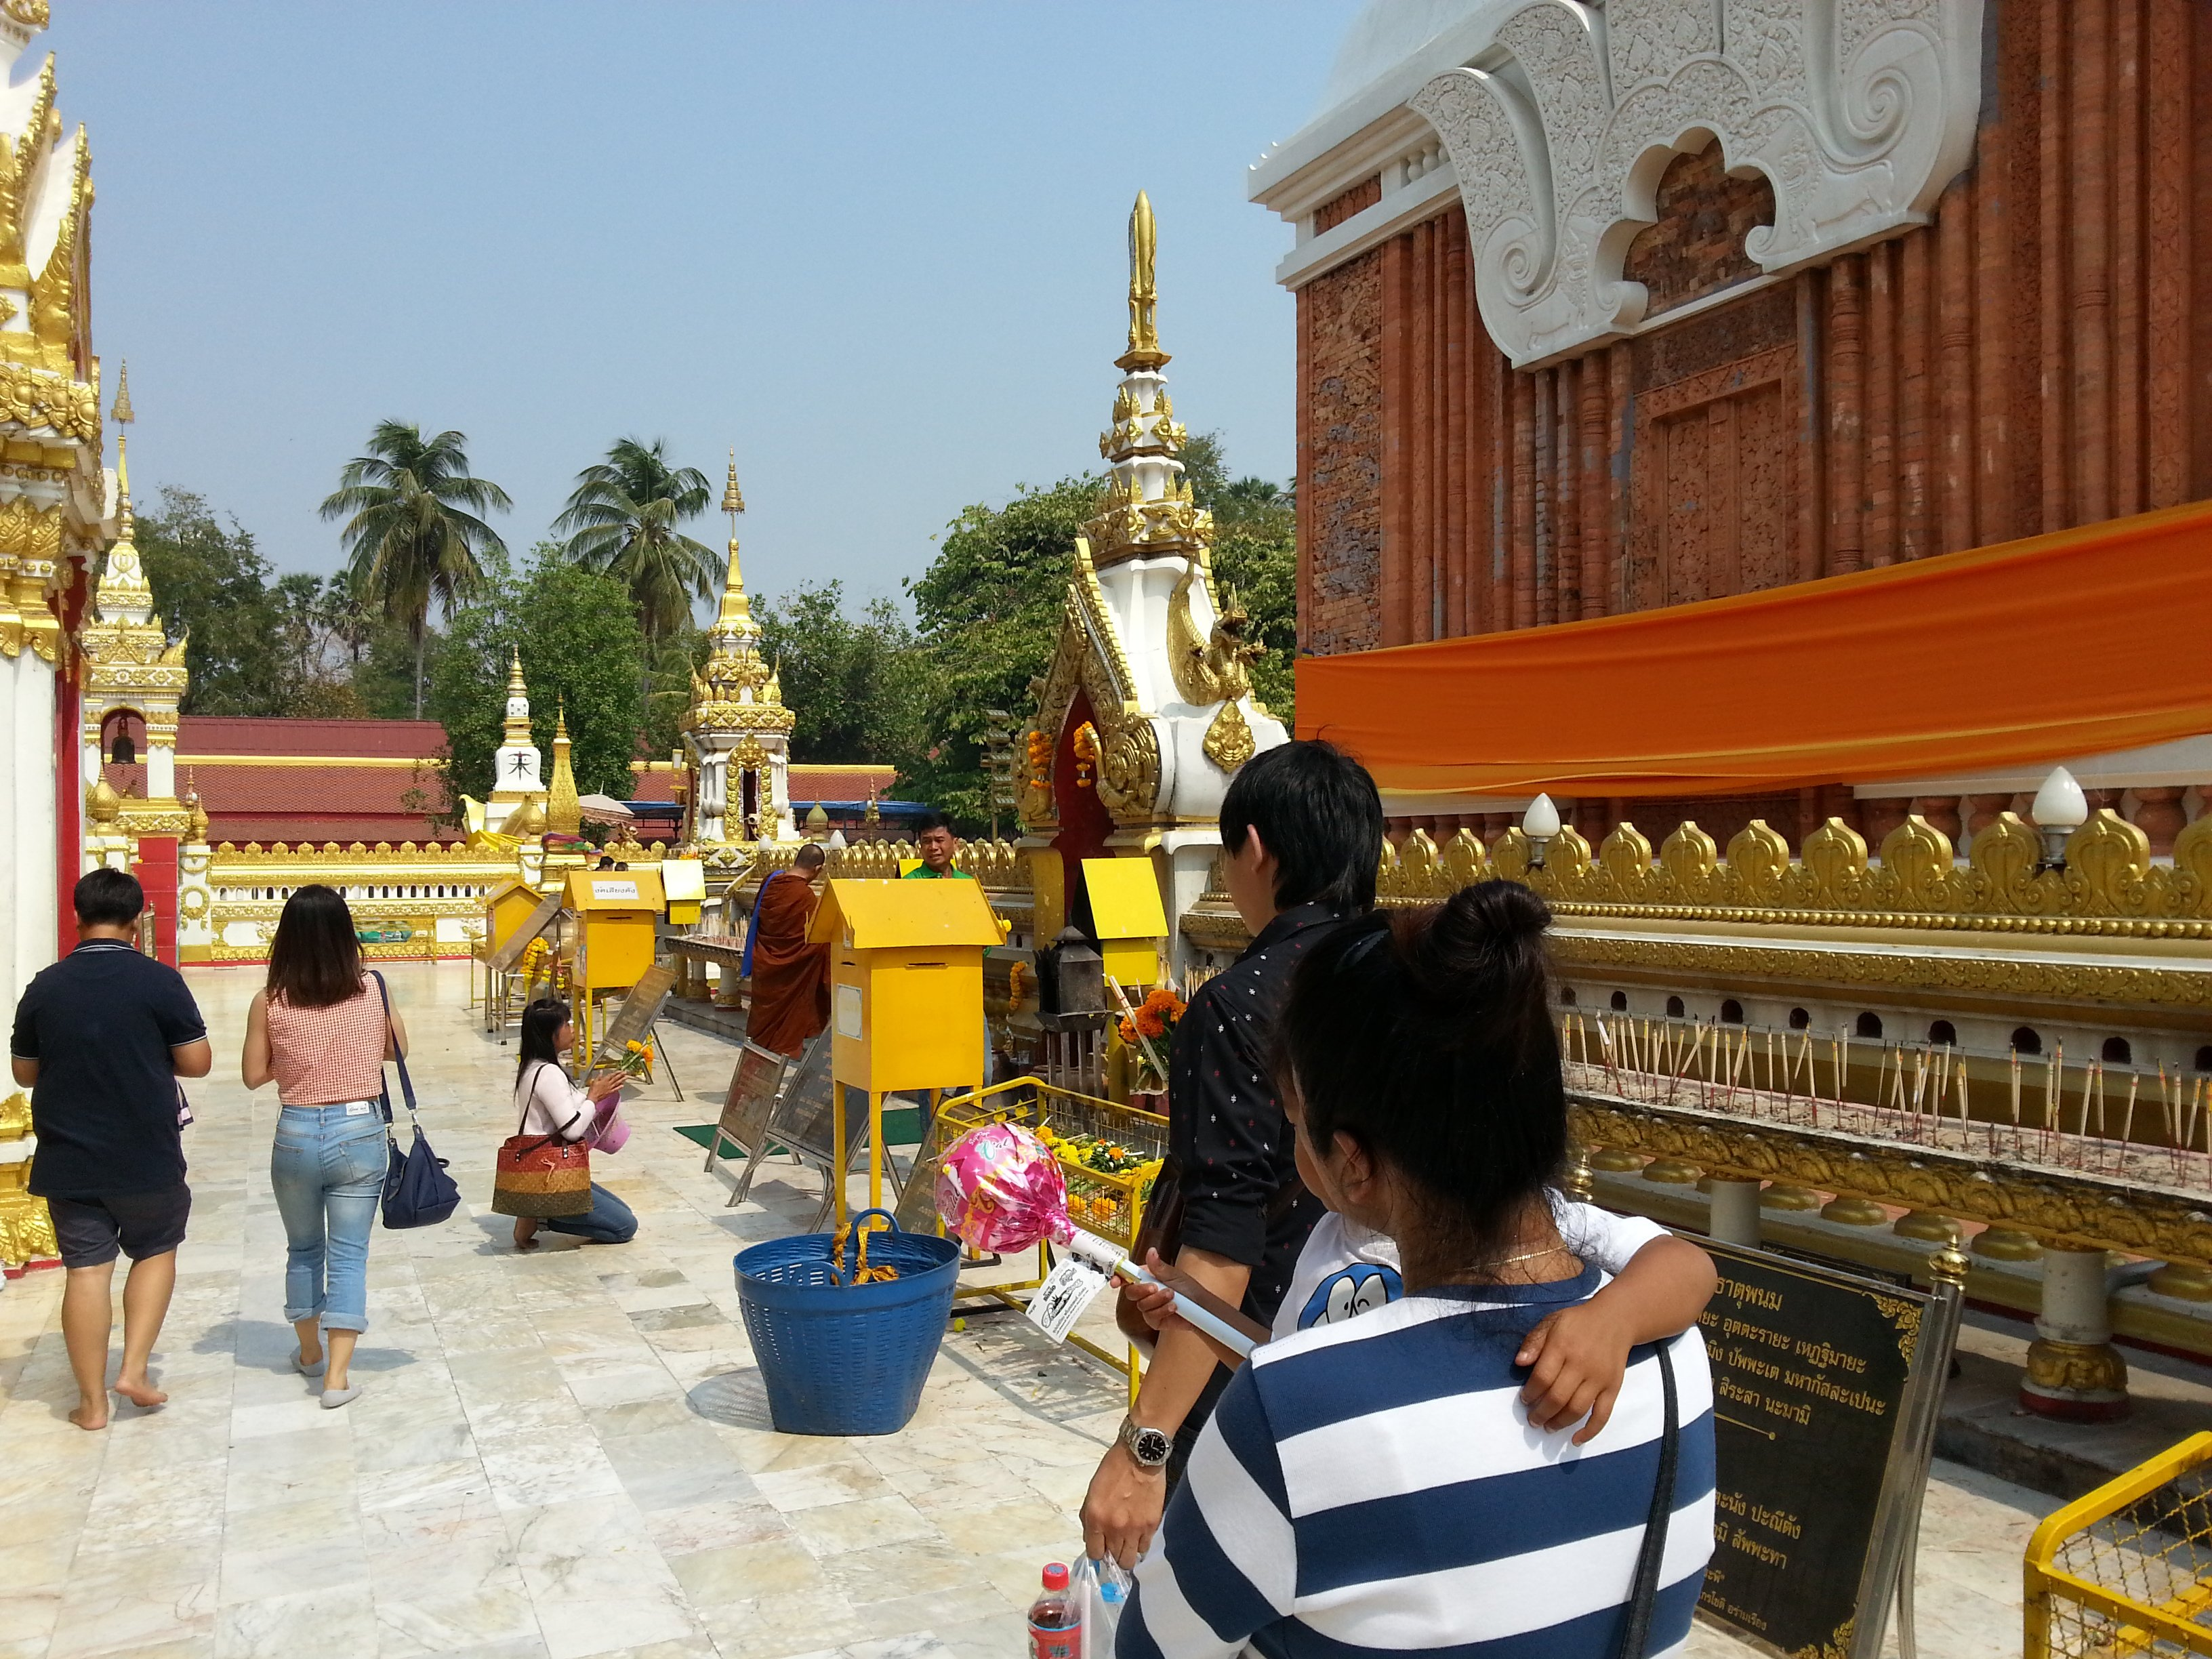 Walking around the chedi at Wat Phra That Phanom is believed to bring good fortune